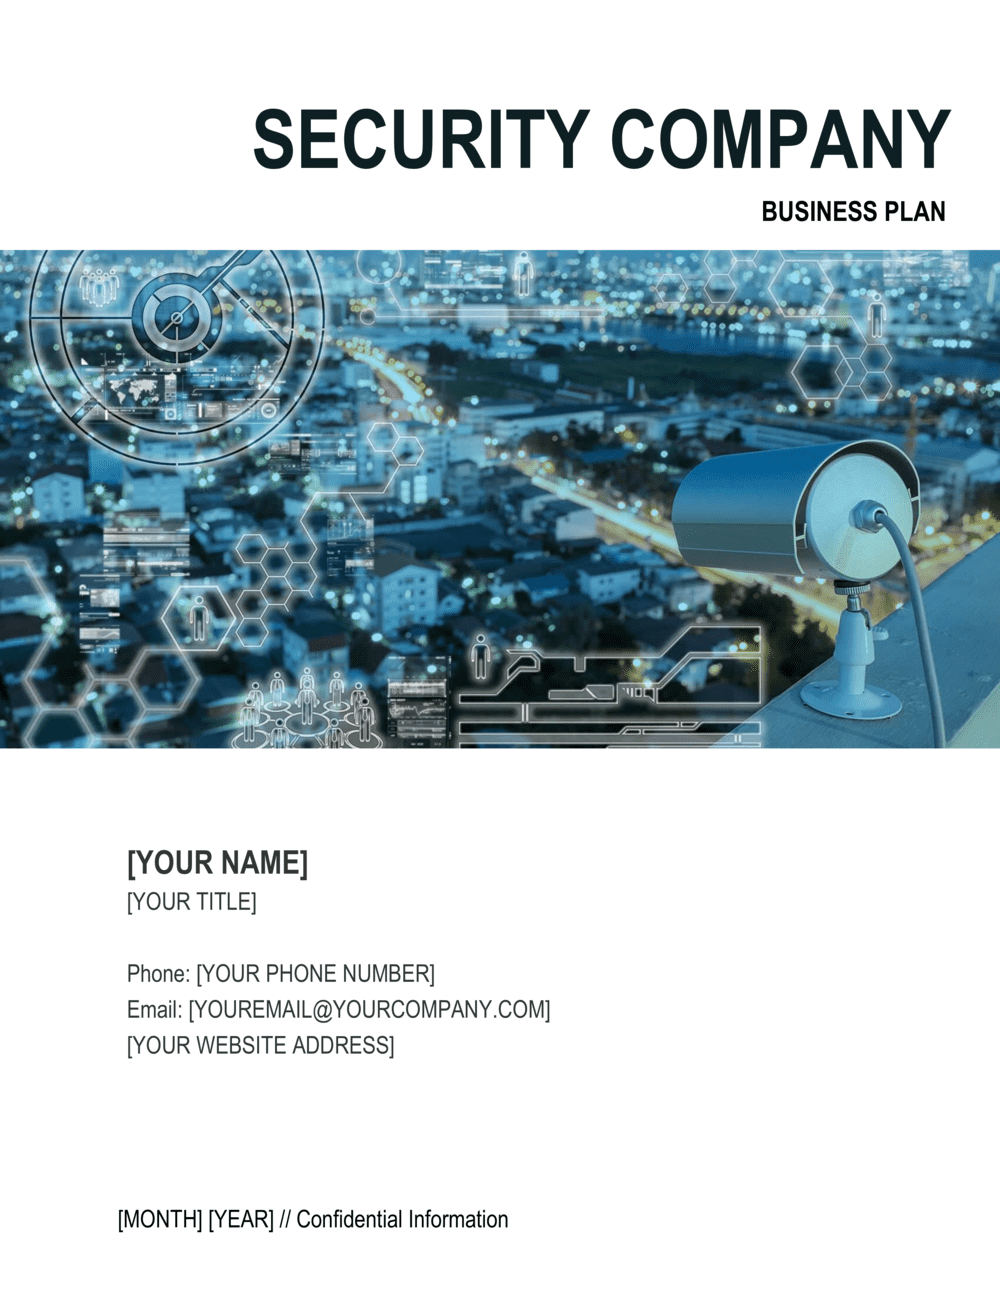 Business-in-a-Box's Security Company Business Plan 2 Template